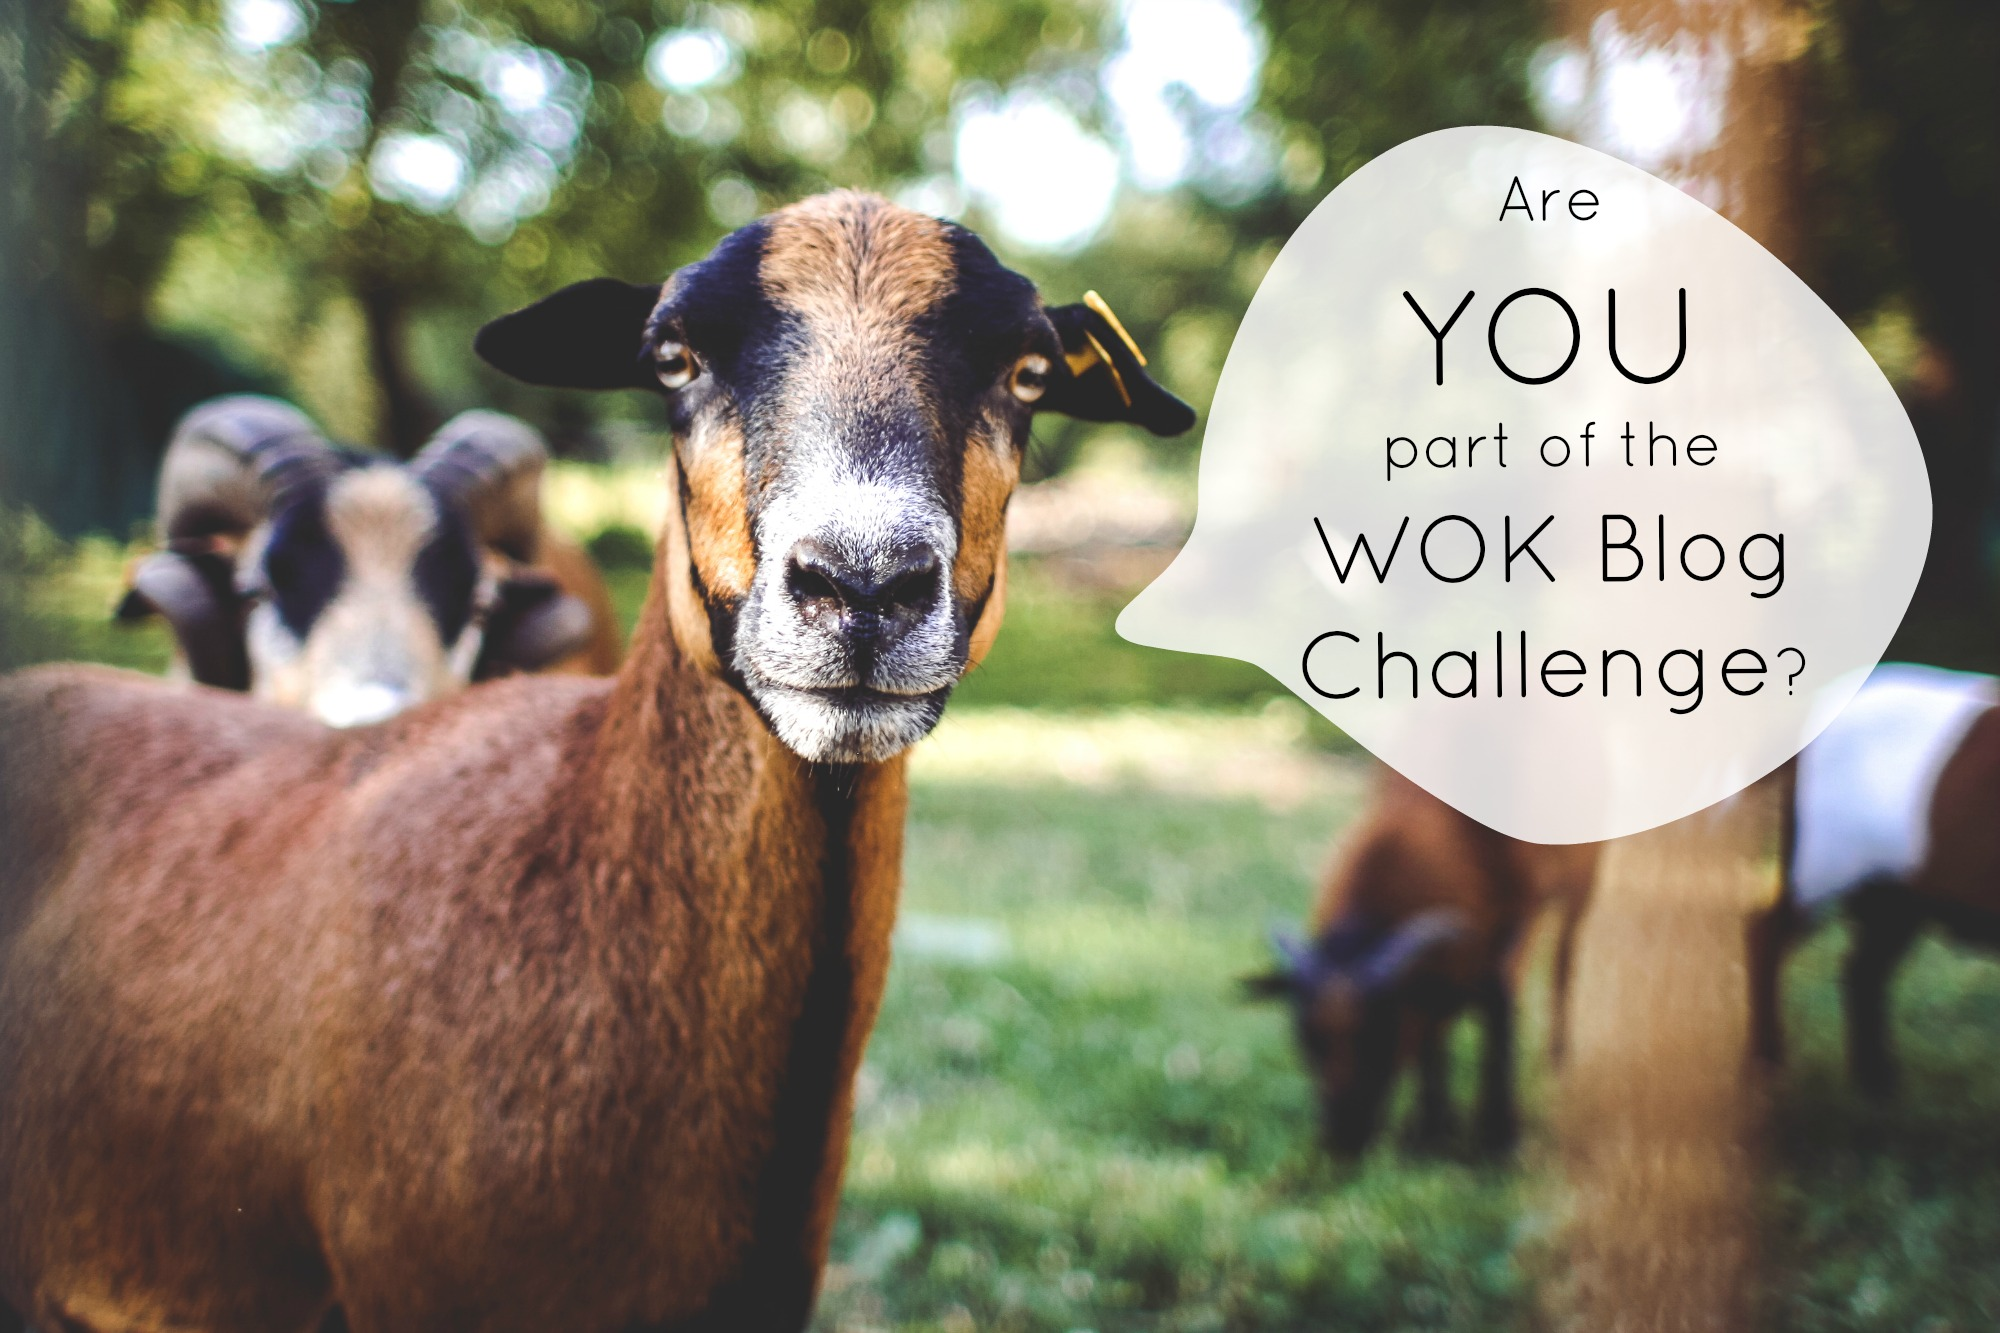 Are you part of the WOK Blog Challenge?